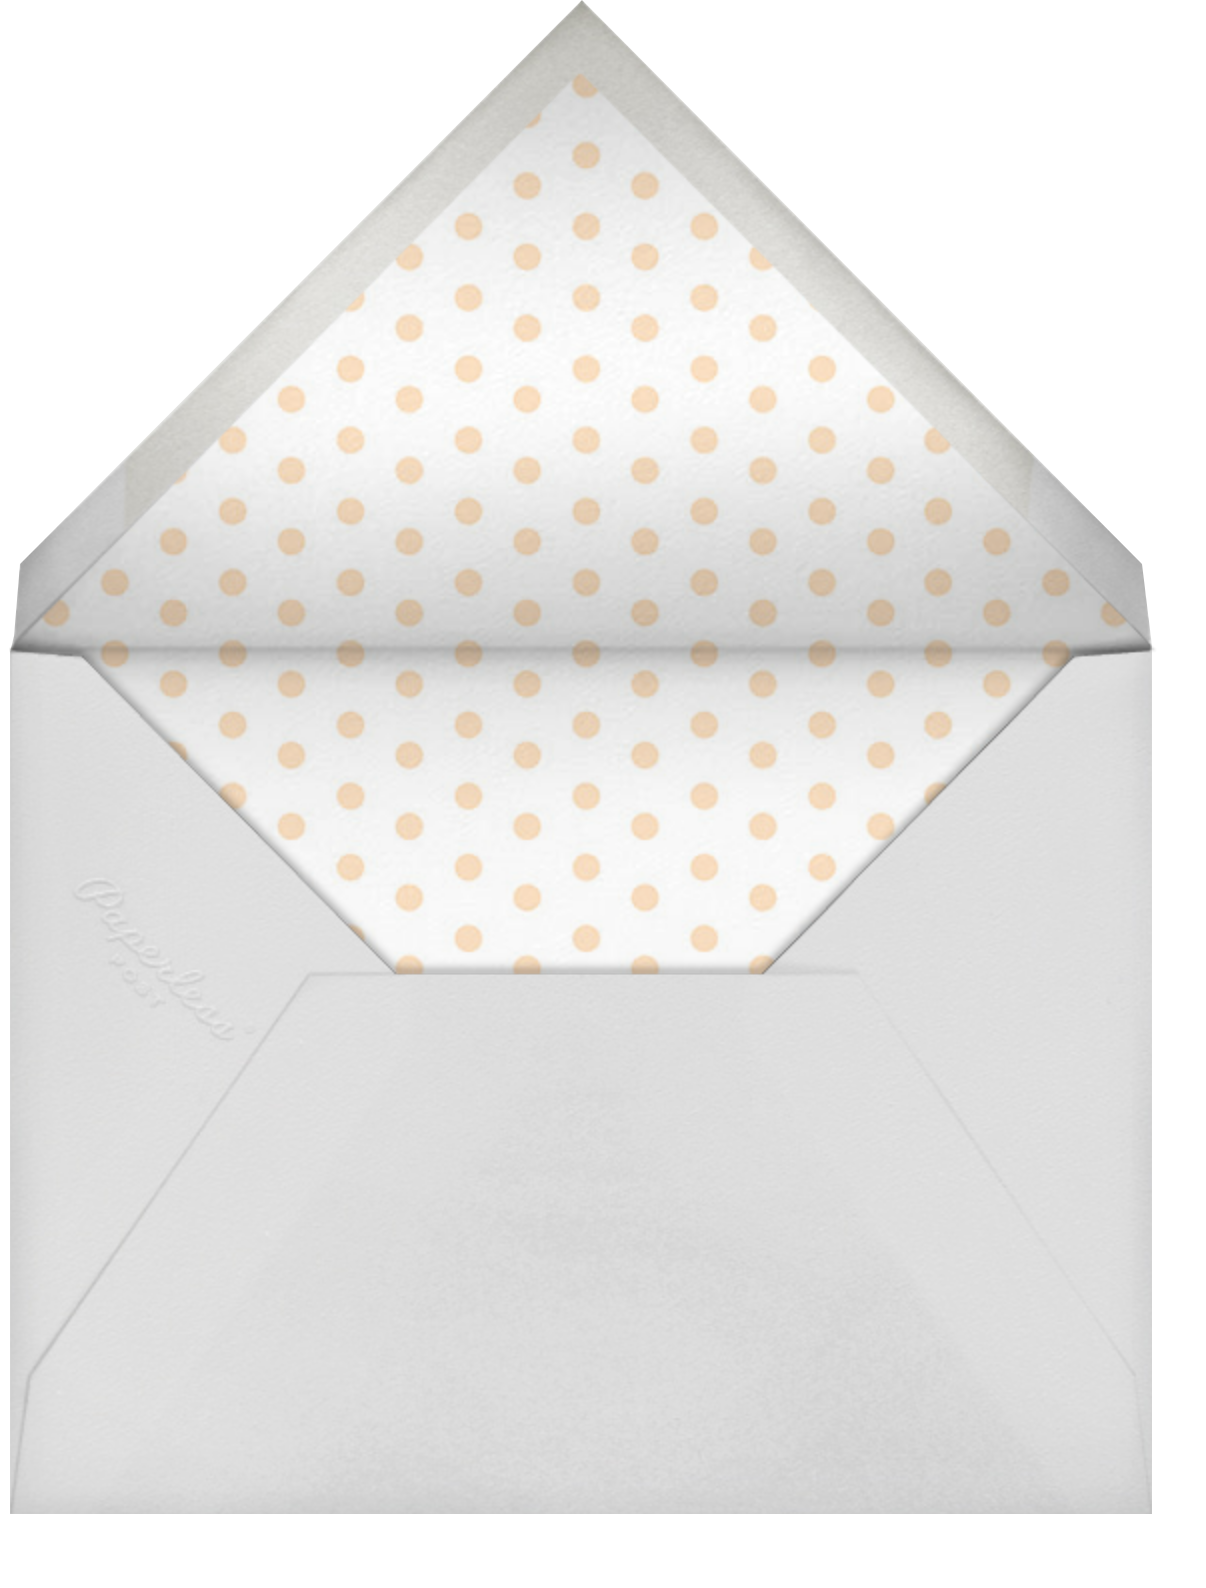 You're Invited Ring - Sherbet - Rifle Paper Co. - Bachelorette party - envelope back